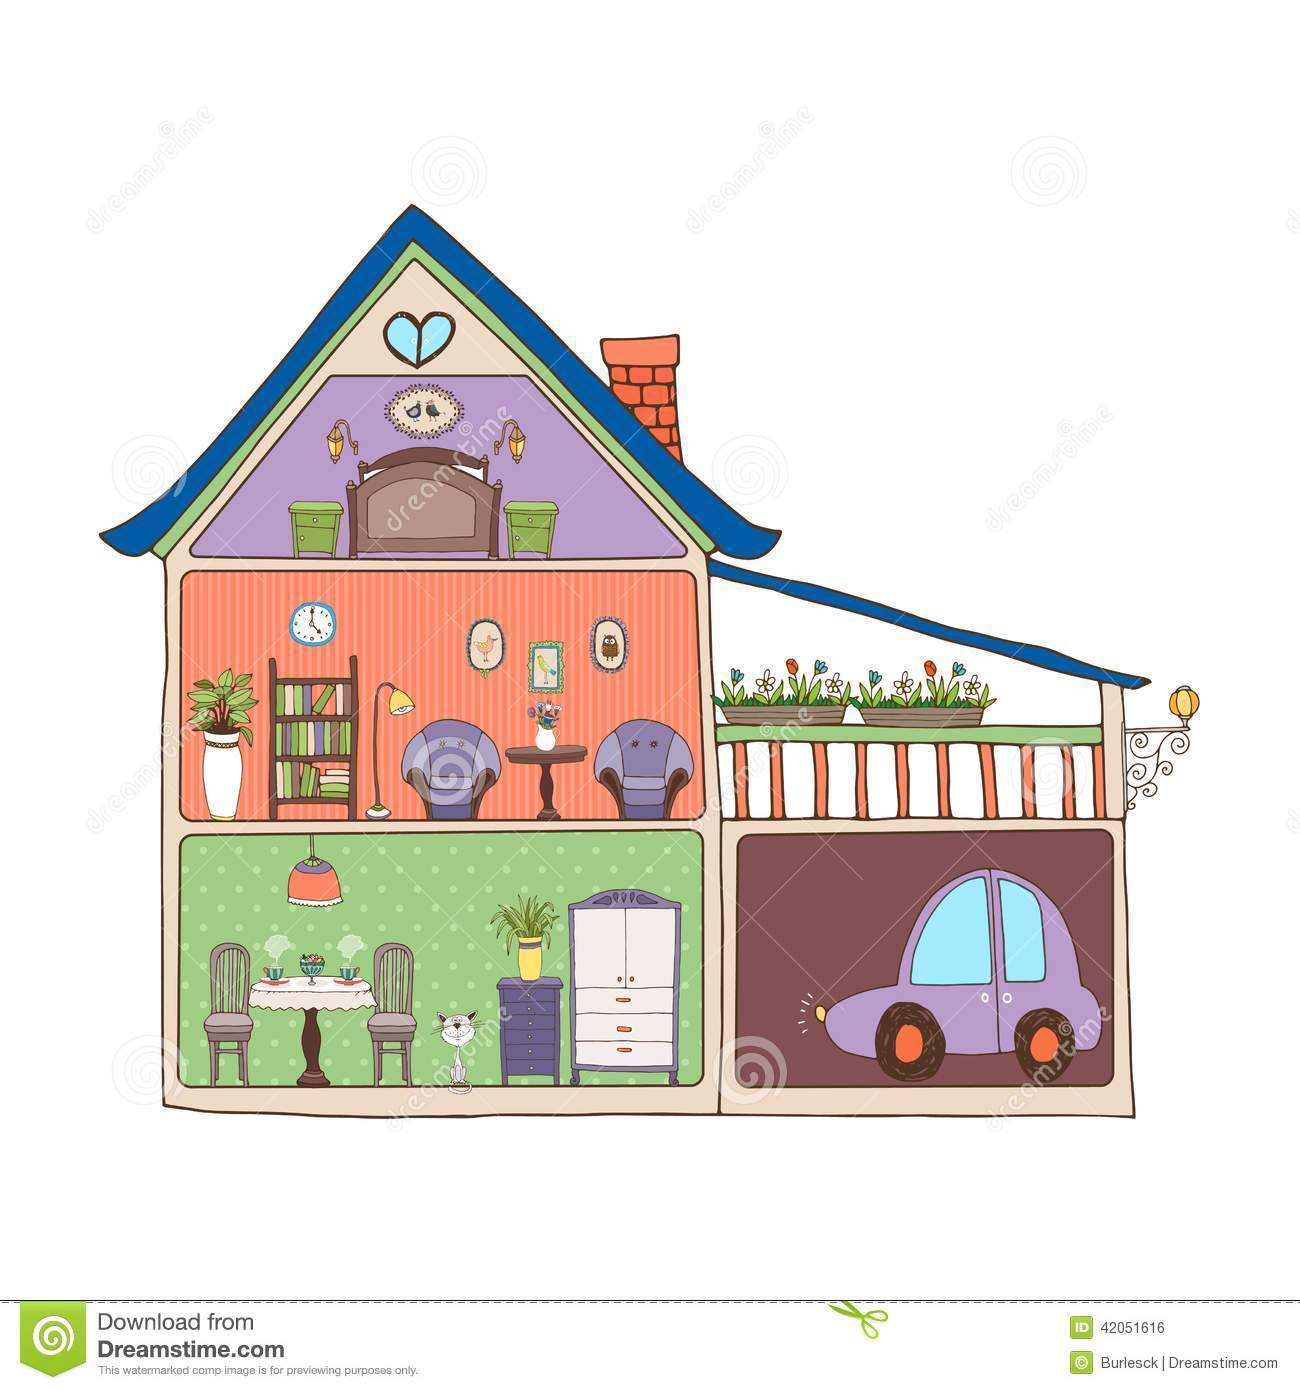 Home interior design and decor stock photo image 42051616 for Interior design images vector